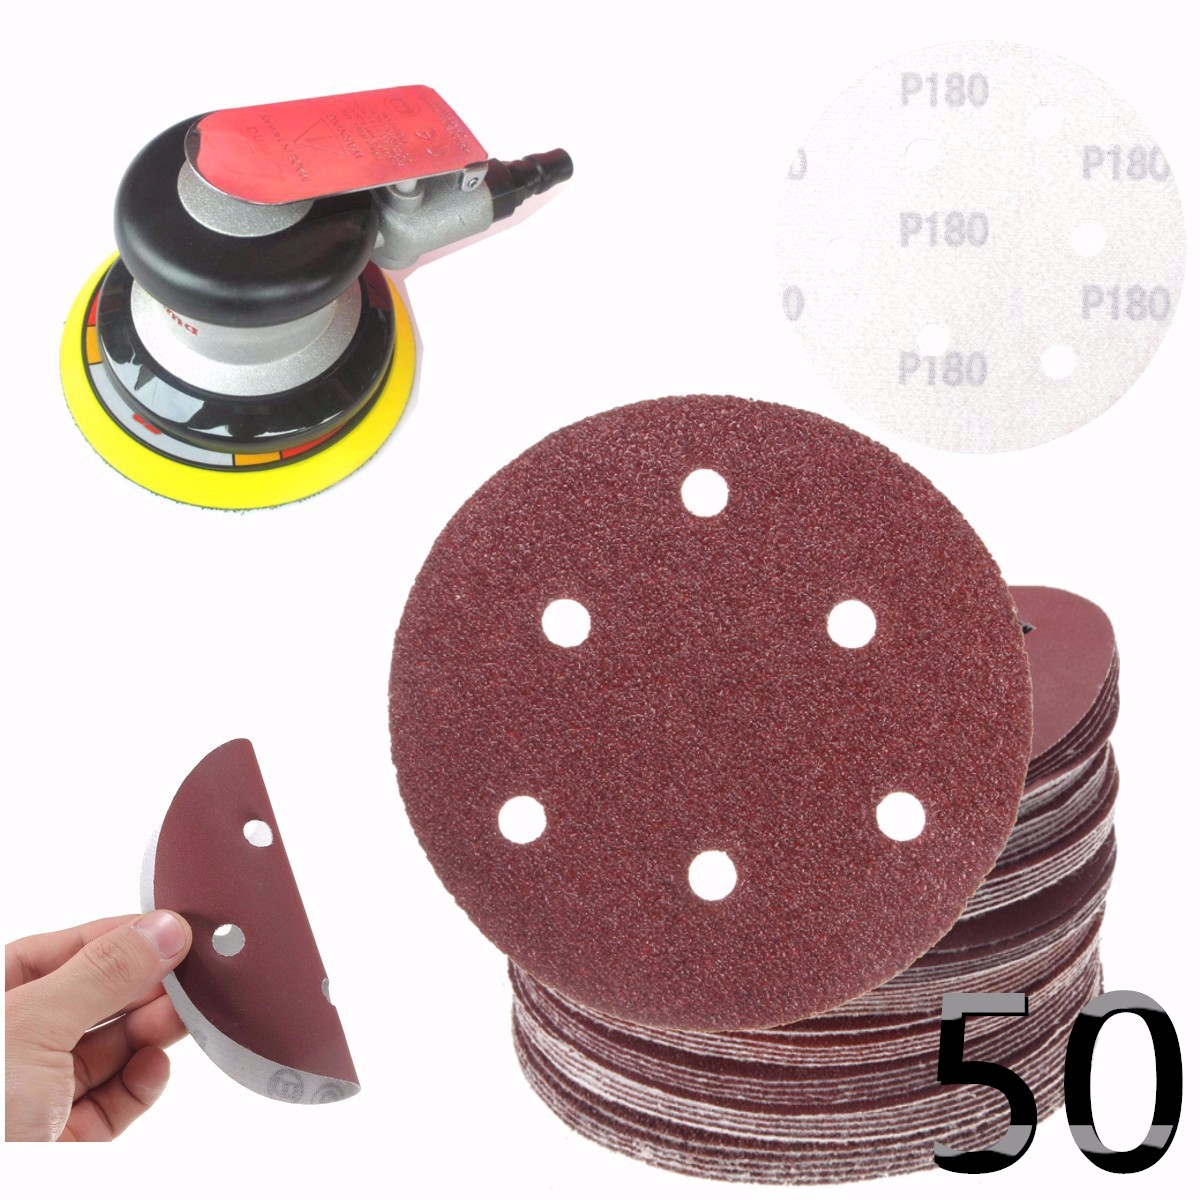 50Pcs 125mm/5inch  6 Holes Sanding Disc 40-800 Mixed Grit Sandpaper Round Shape Buffing Pads Orbital Sheet For Polishing